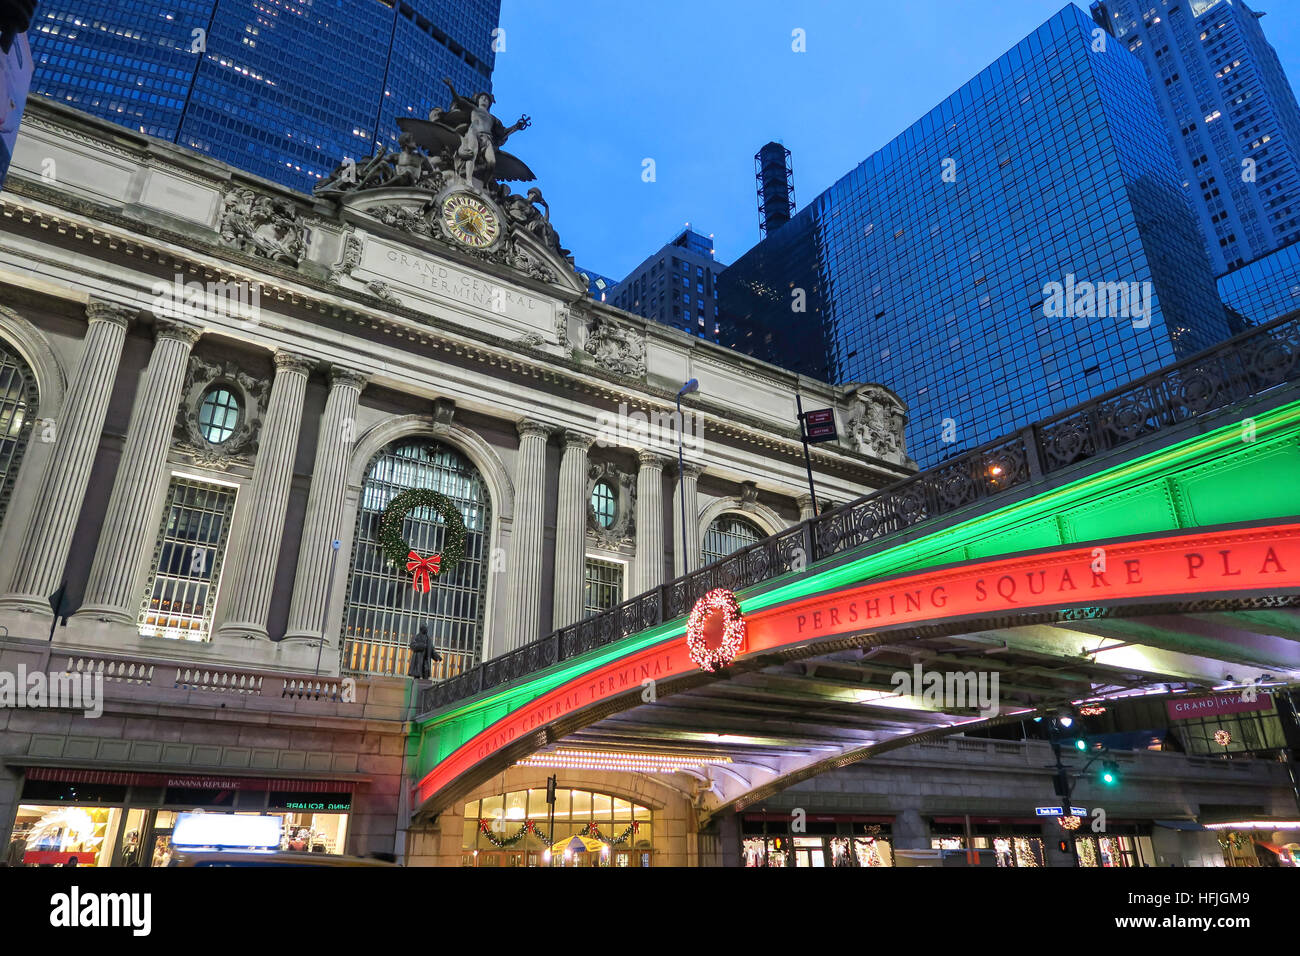 Pershing Square Holiday Lights in New York City, USA - Stock Image